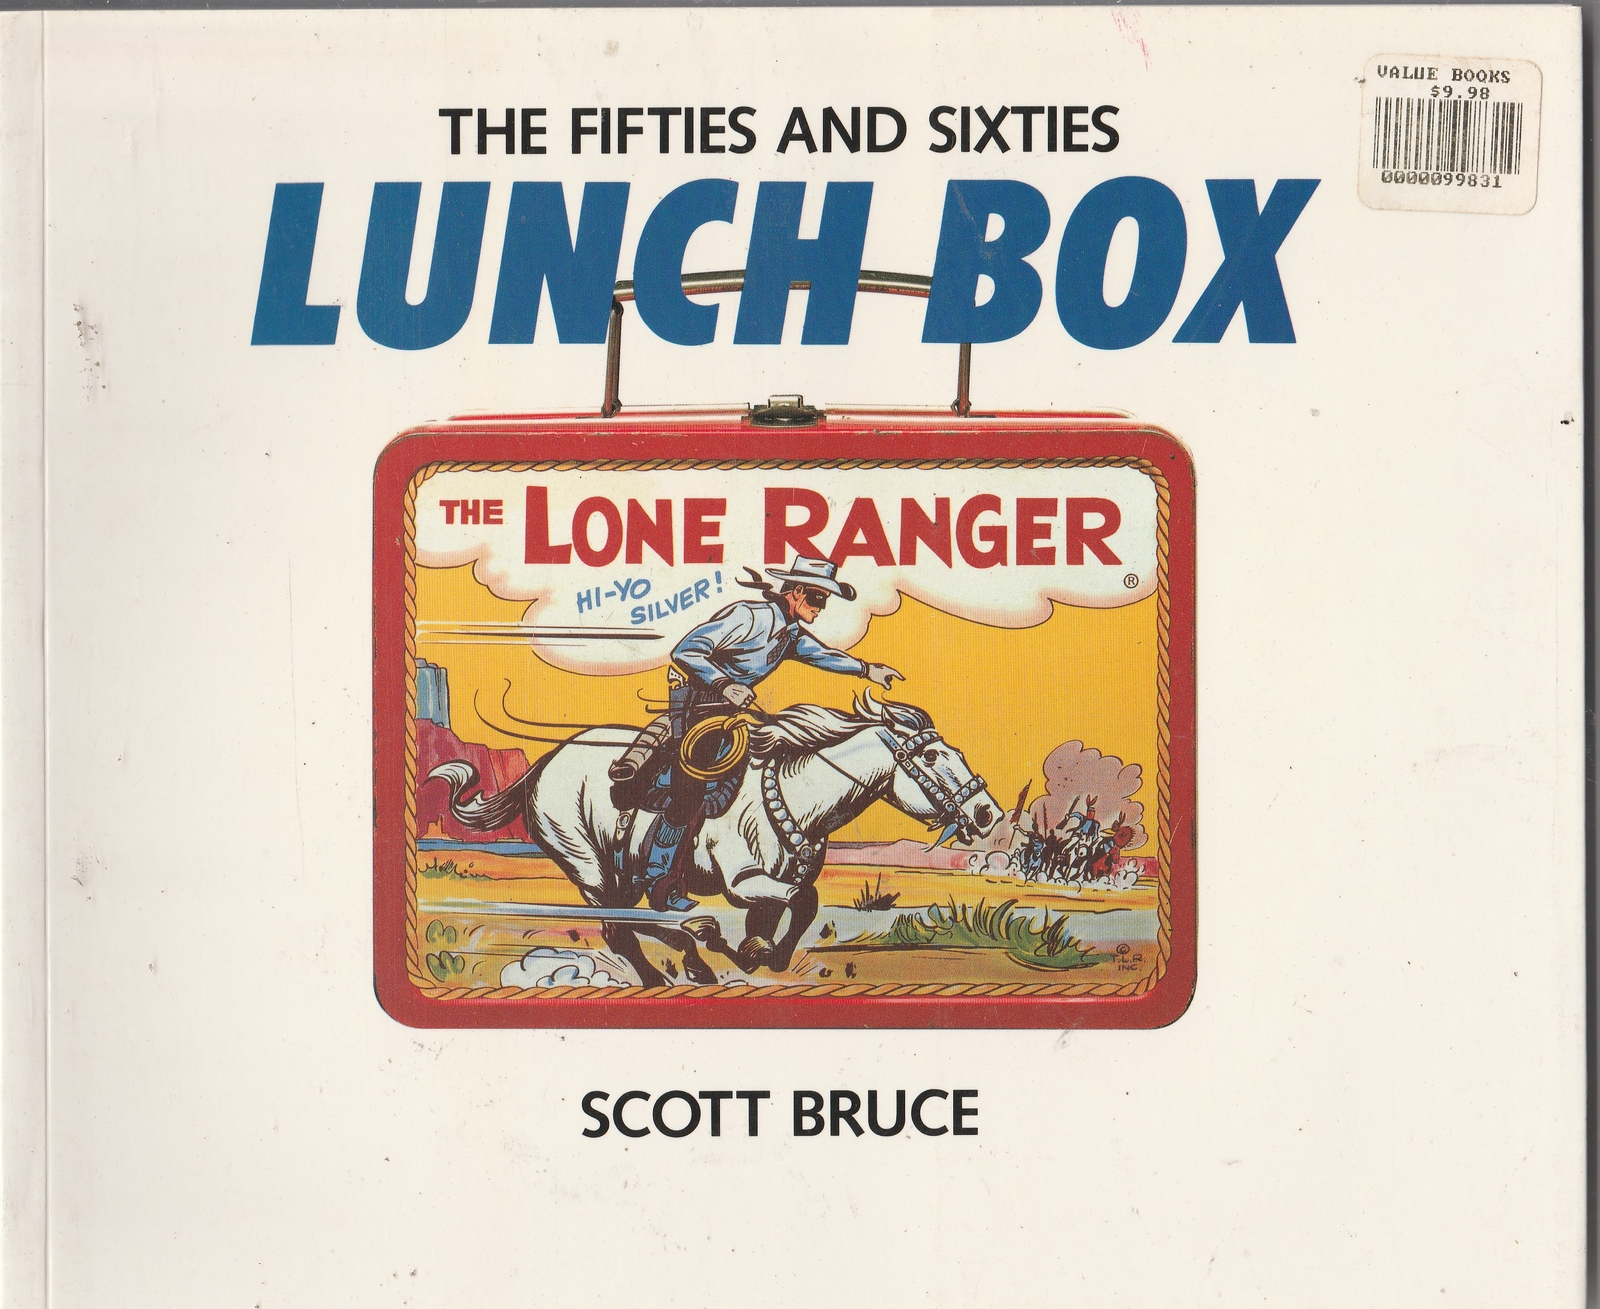 the Fifties and Sixties LUNCHBOX, Scott Bruce 1988 Chronicle Books paperback